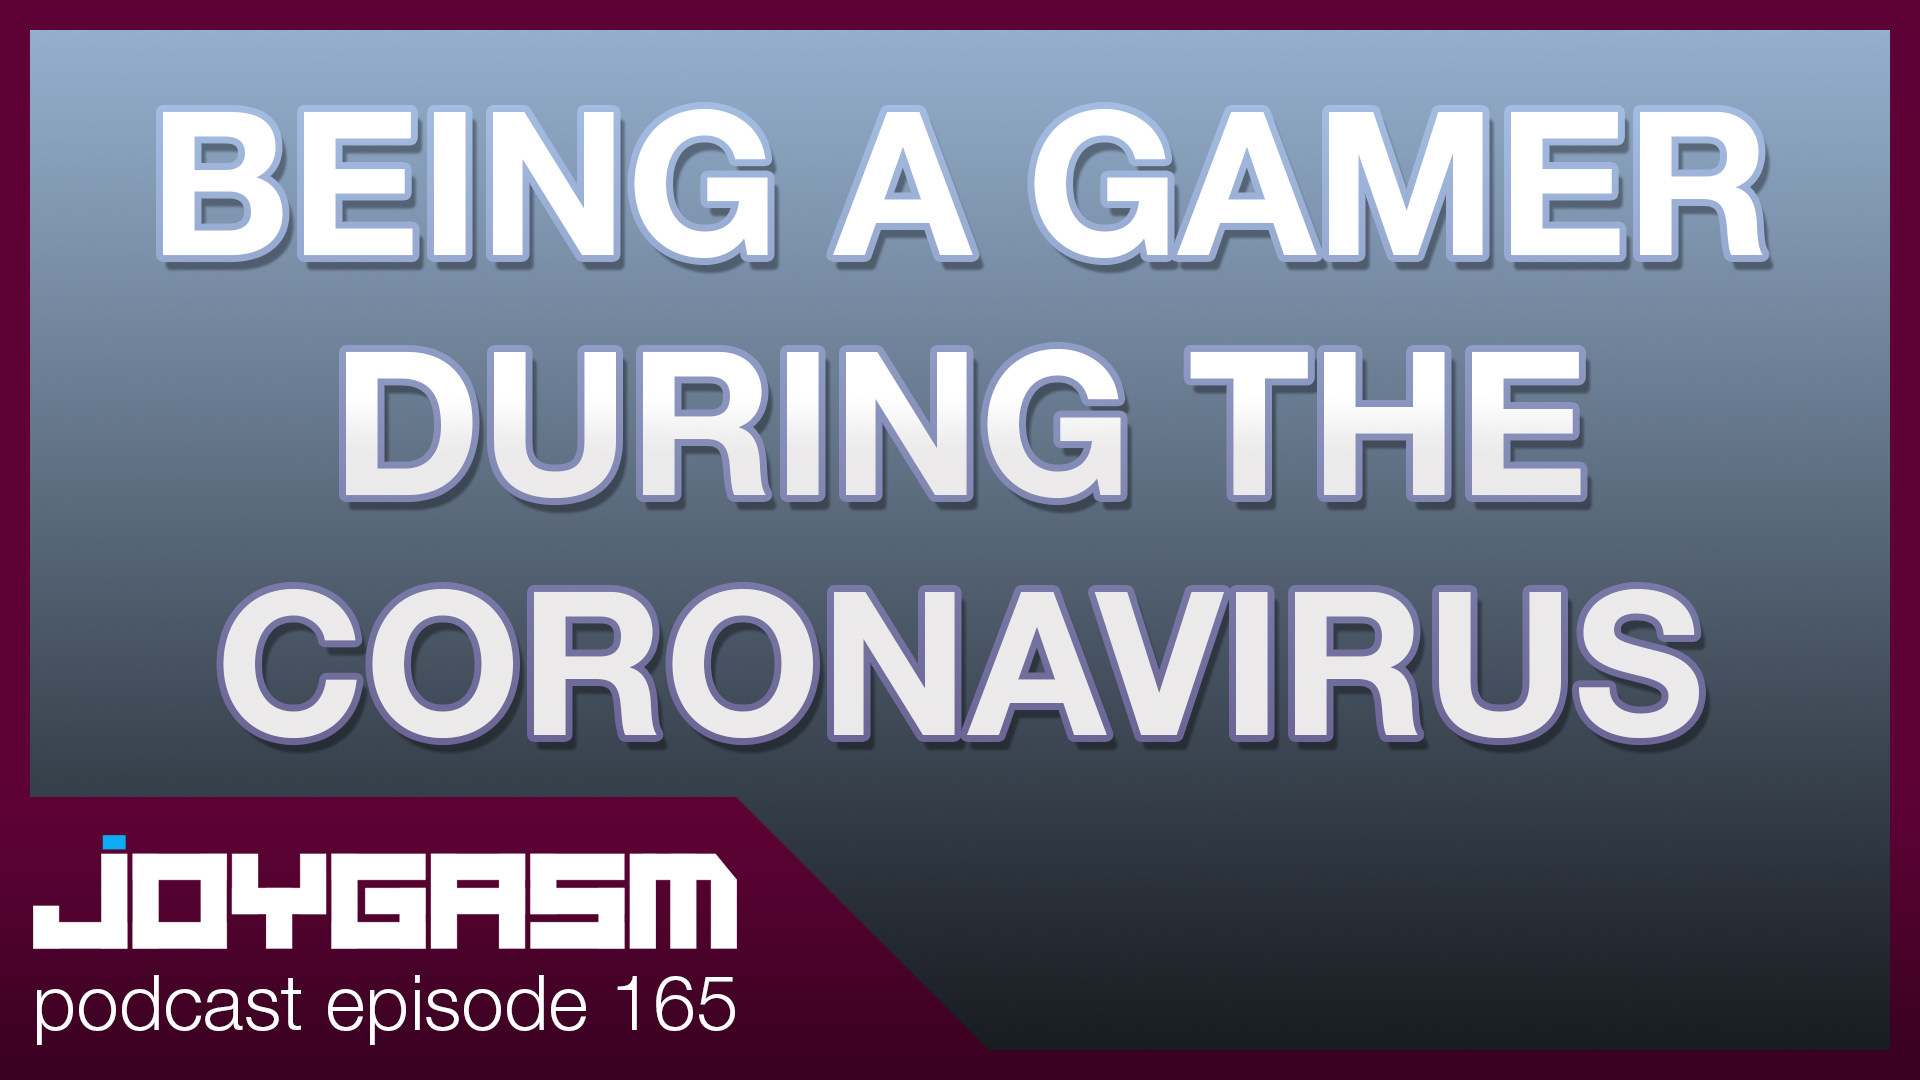 Ep. 165: Being A Gamer During The Coronavirus